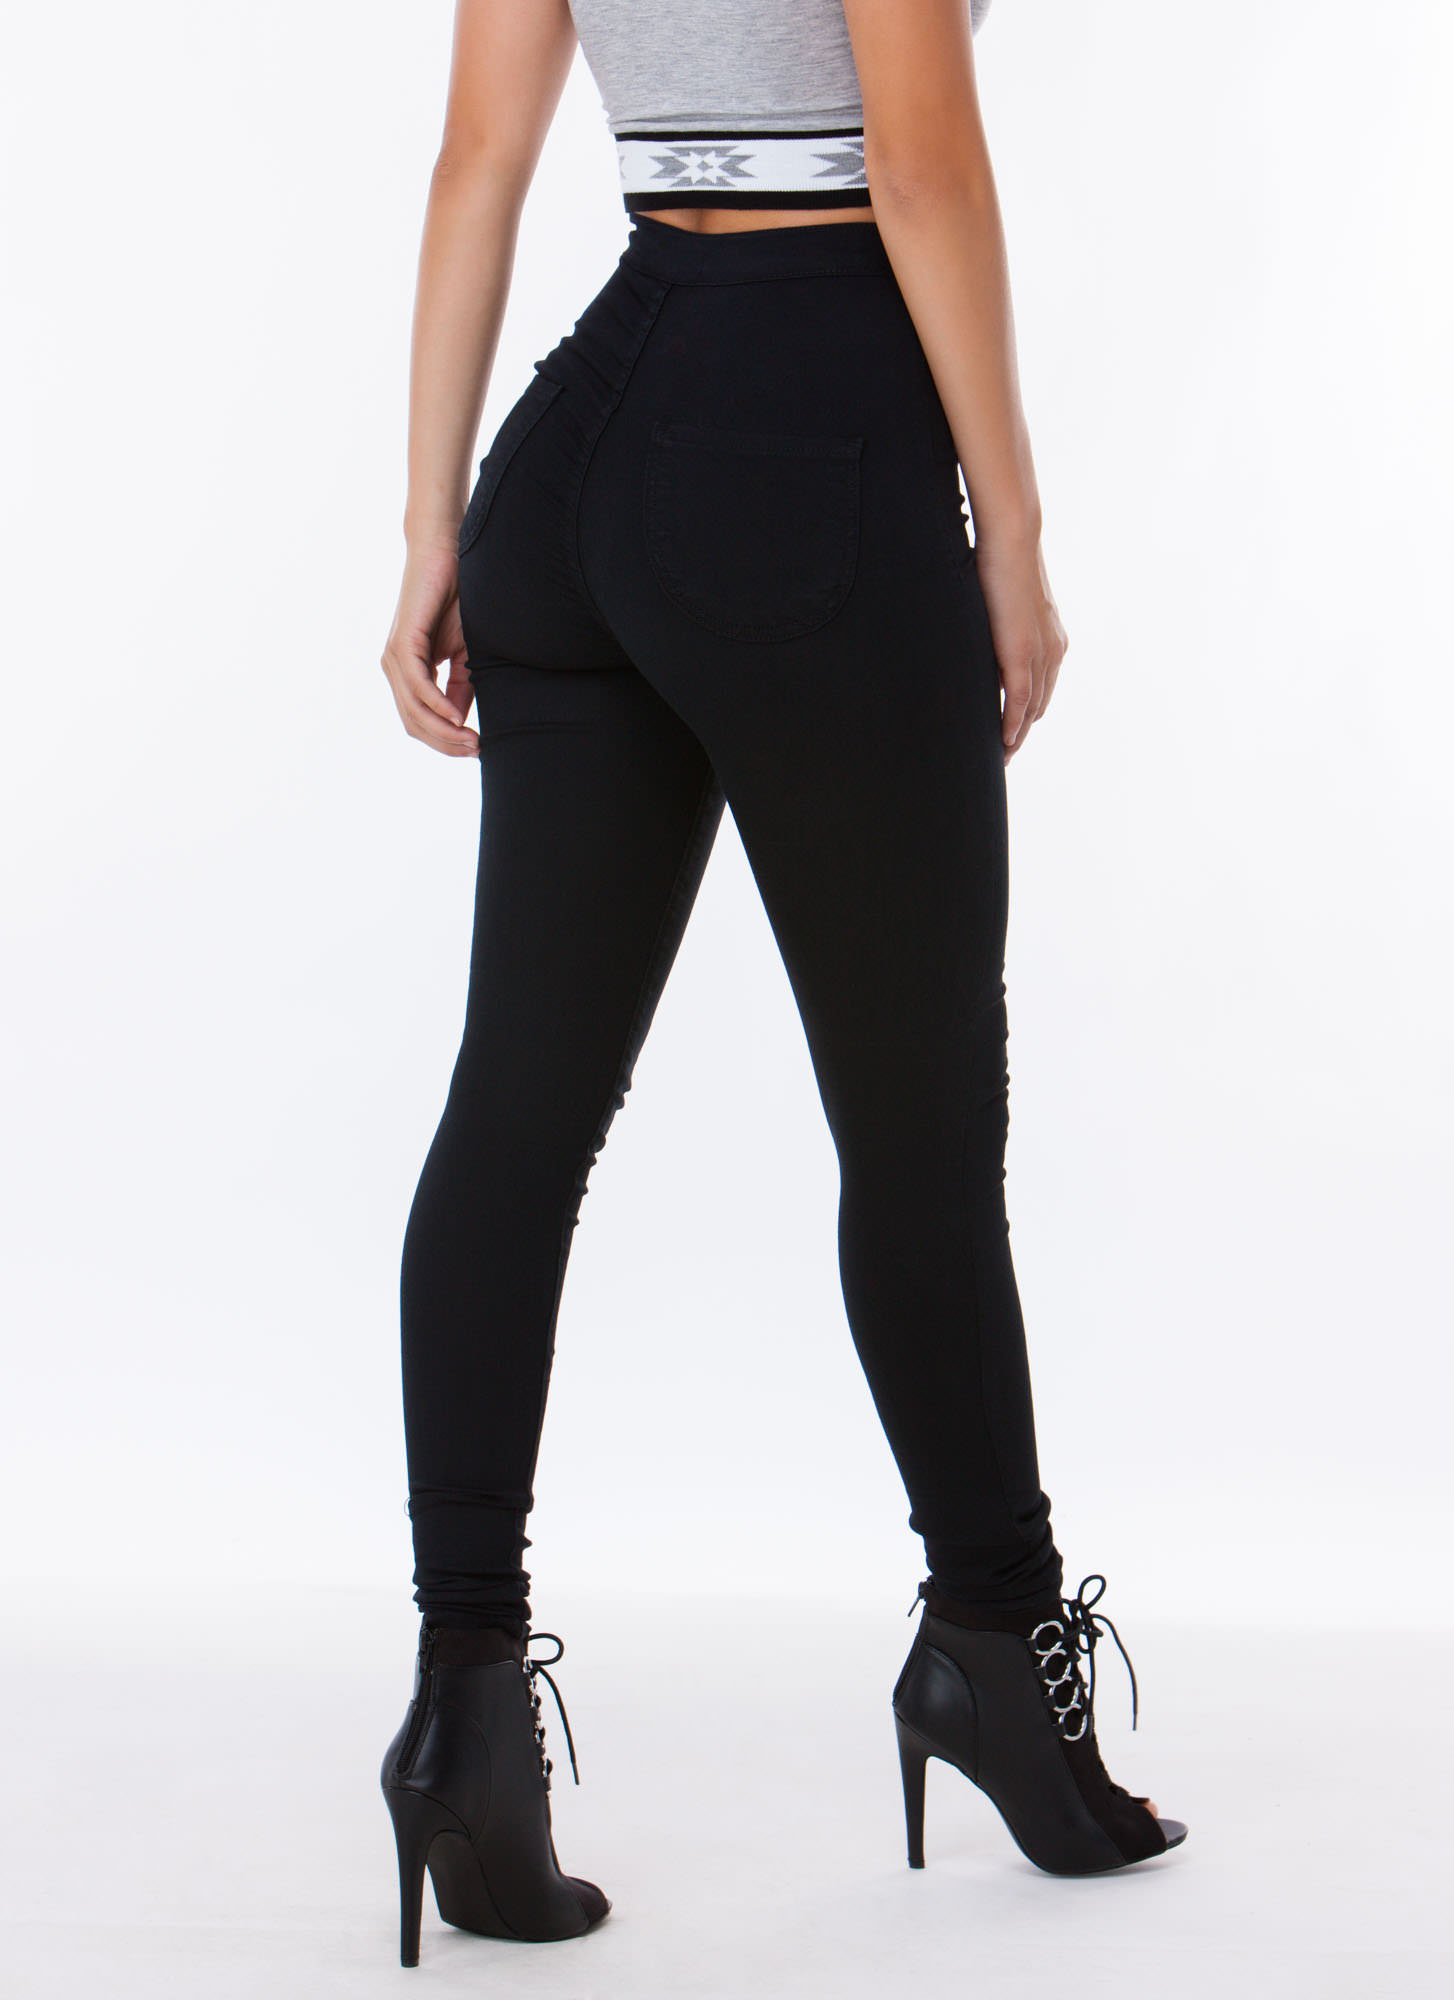 Jeggings are versatile and always on-trend. Style jeggings with pretty pumps for easy weekend style. Shop womens jeggings now.